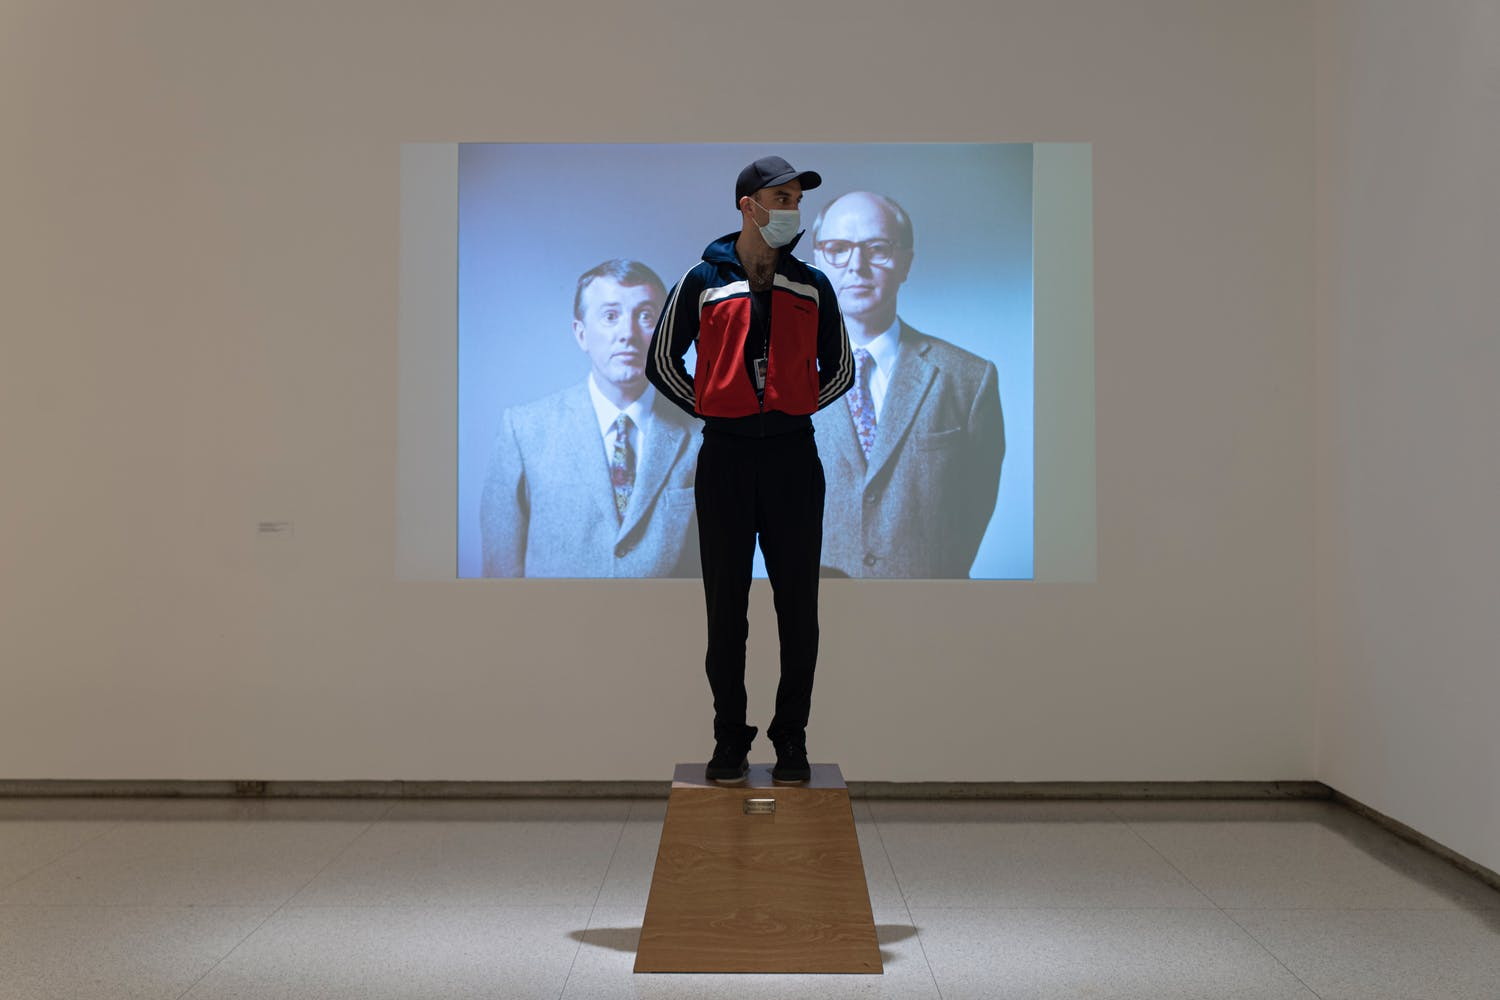 Gallery view with man standing on brown wooden platform with projection in the background